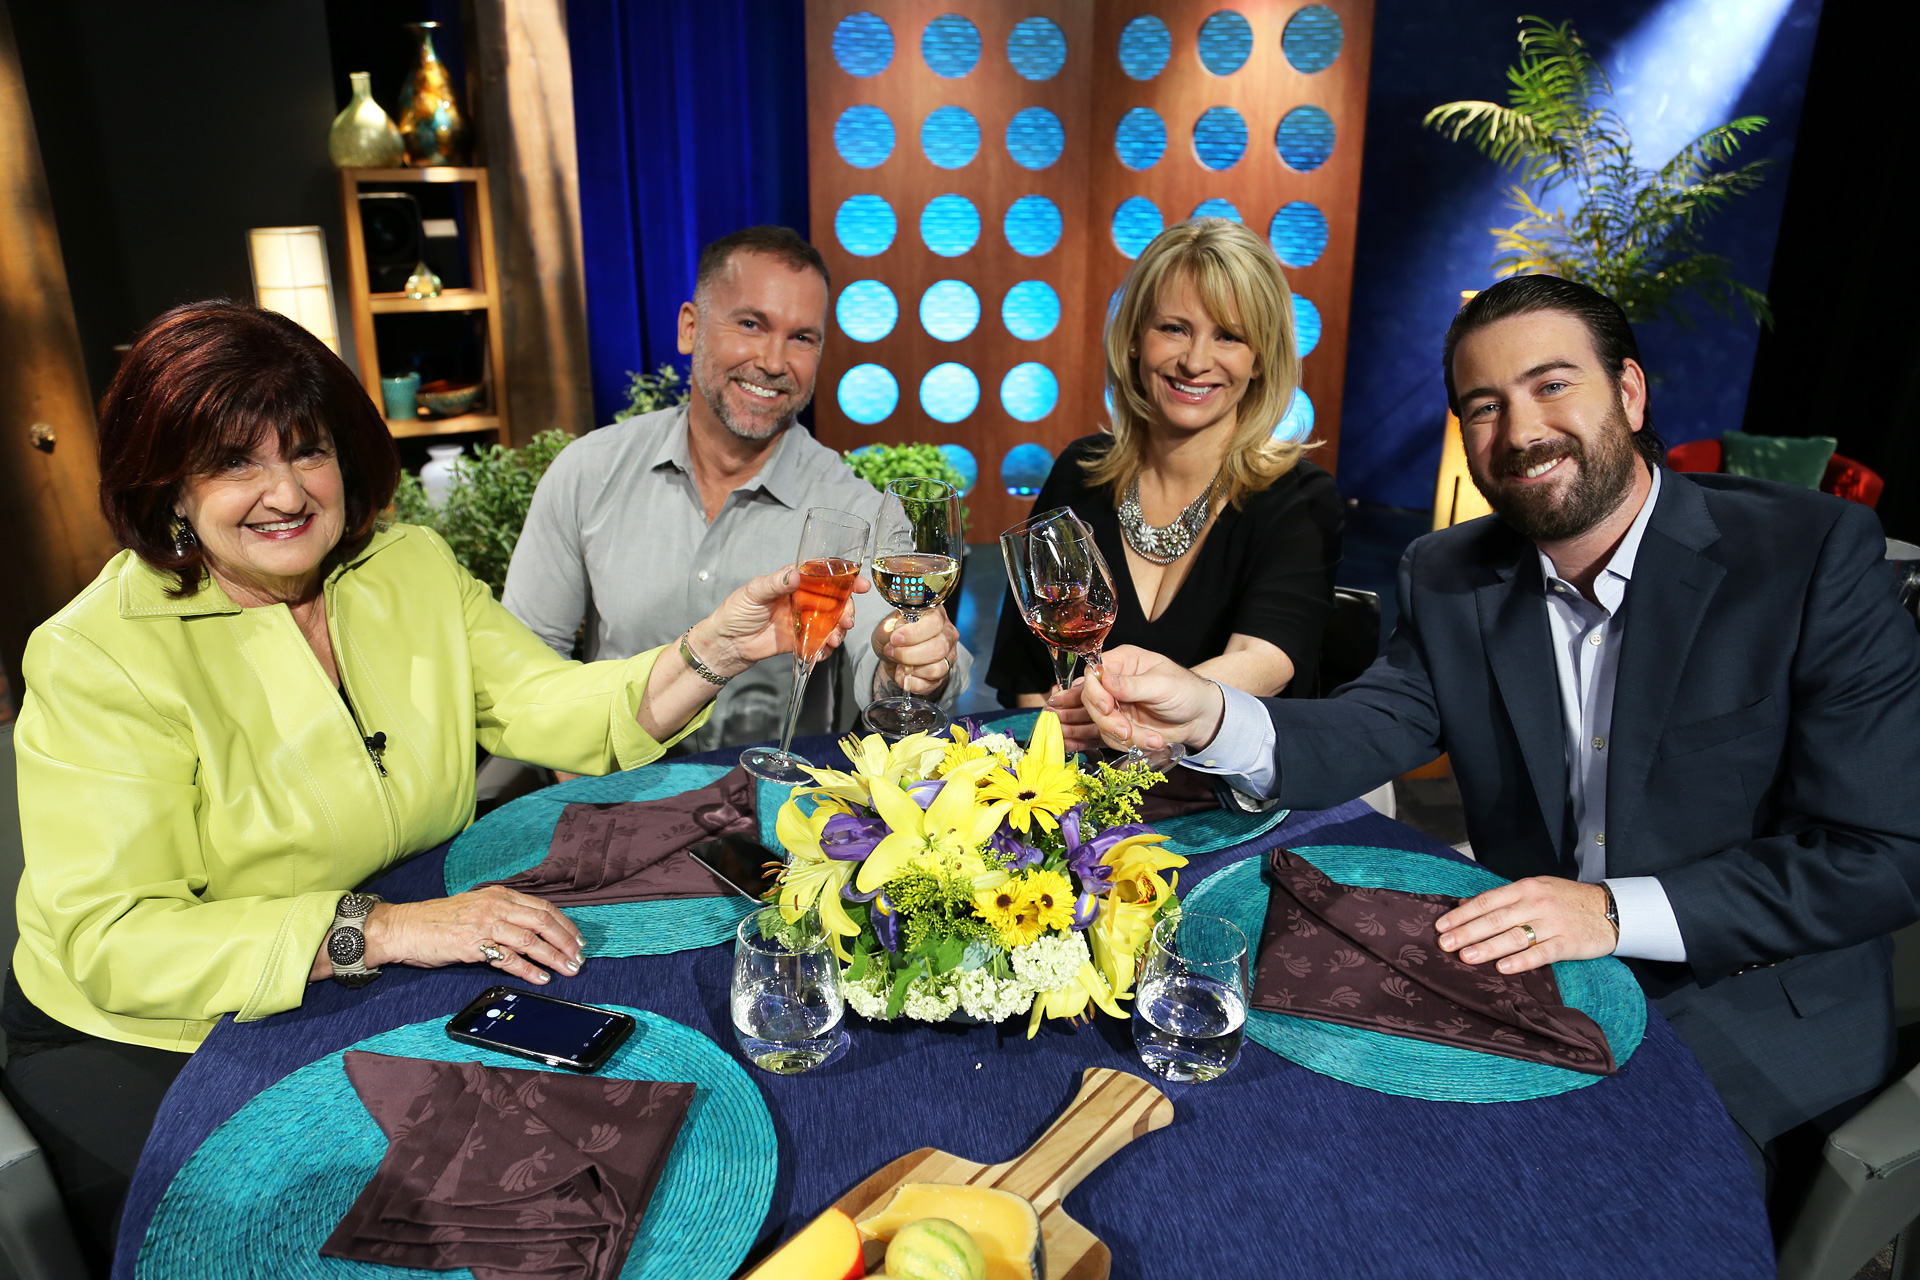 Host Leslie Sbrocco and guests on the set of the episode 16 of season 11.